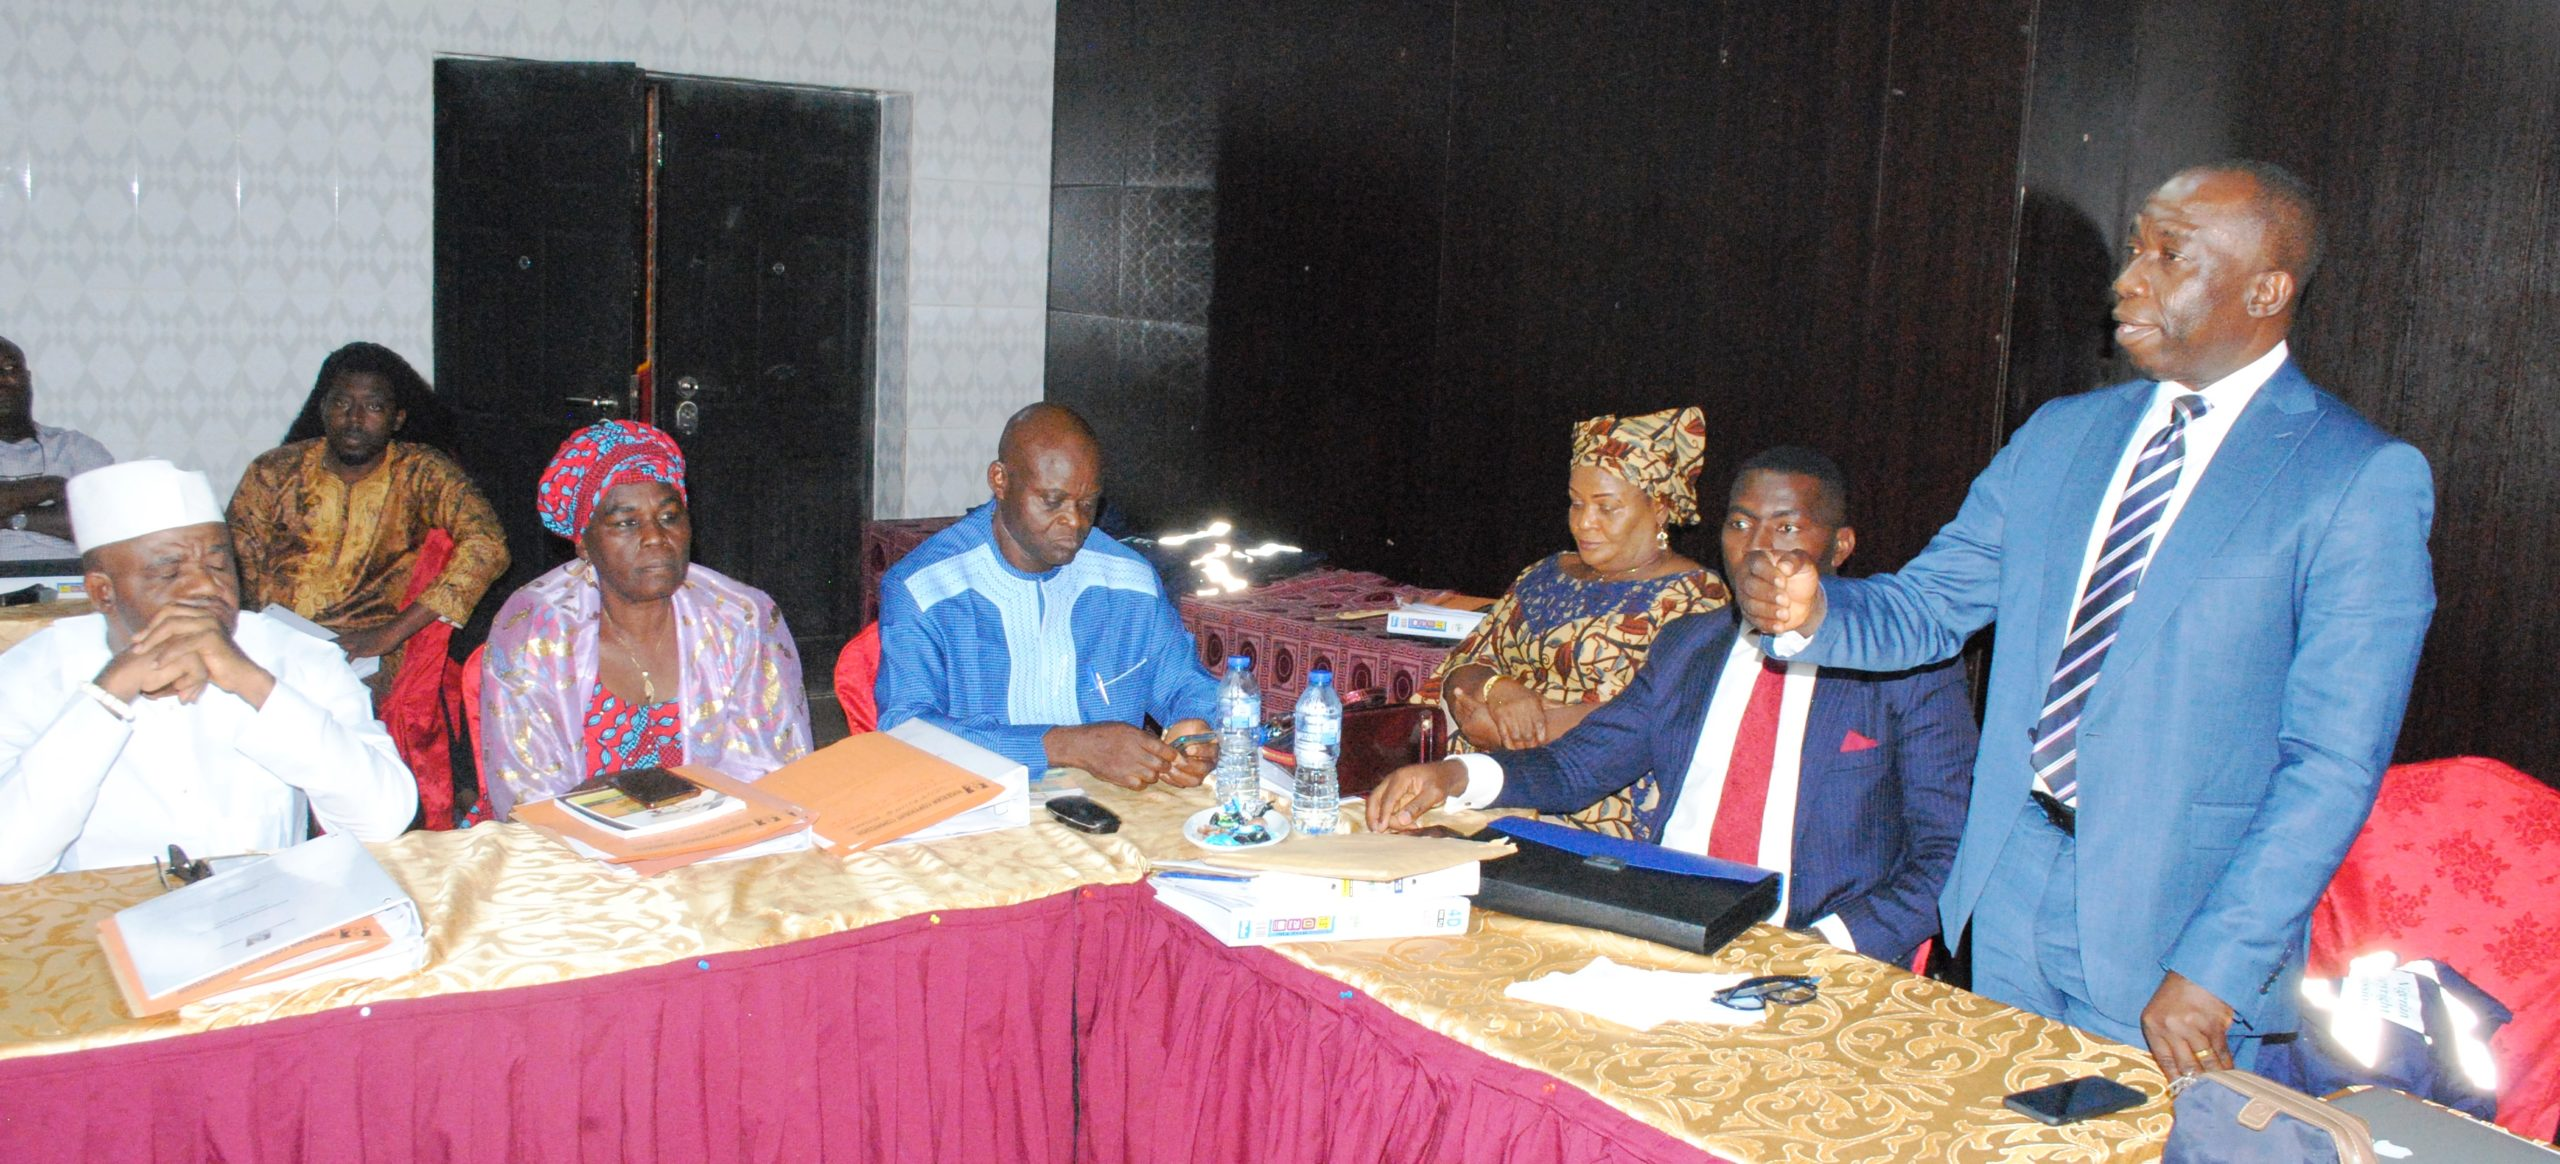 Director-General, Nigerian Copyright Commission (NCC), Mr. John O. Asein, addresses NCC Board members on significancethe Special Copyright Inspectors (SCI) initiative while the Board Chairman, Dr. Tonye Clinton Jaja (2nd R) and other Board members listen.